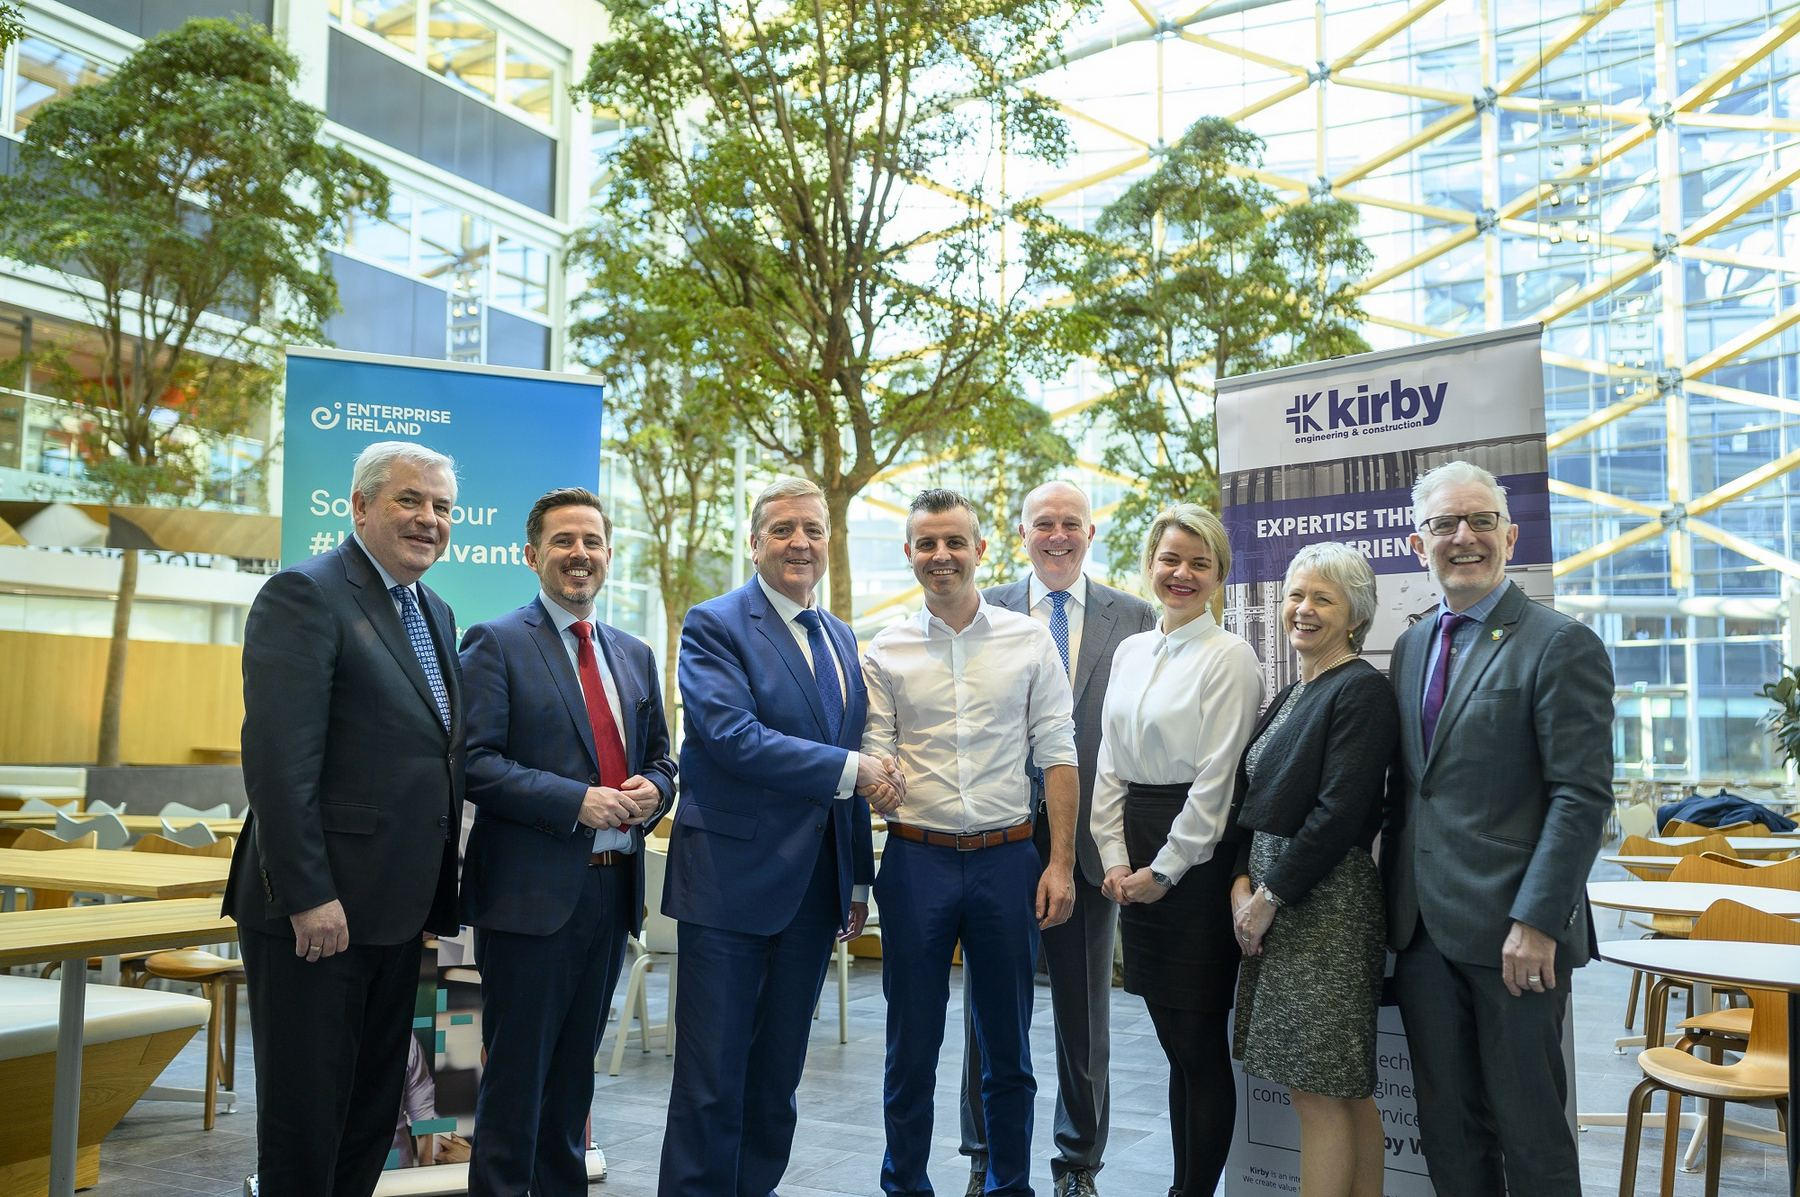 Minister Pat Breen TD Officially Opens Kirby's Netherlands Office